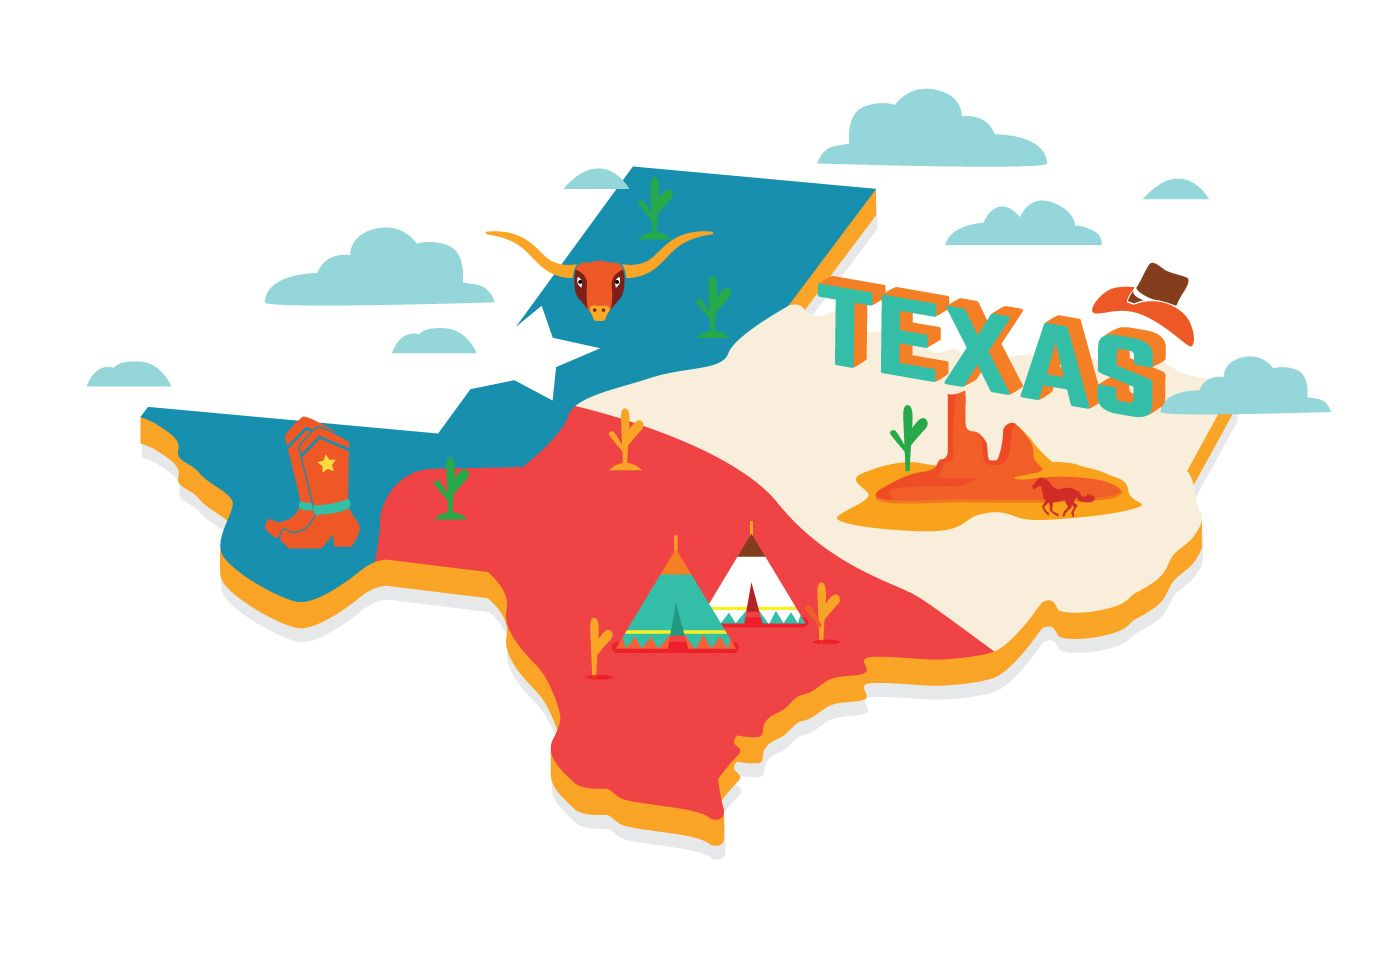 Free Maps And Flags Icons: Keywords: Texas Map Flag Icons Design Illustration